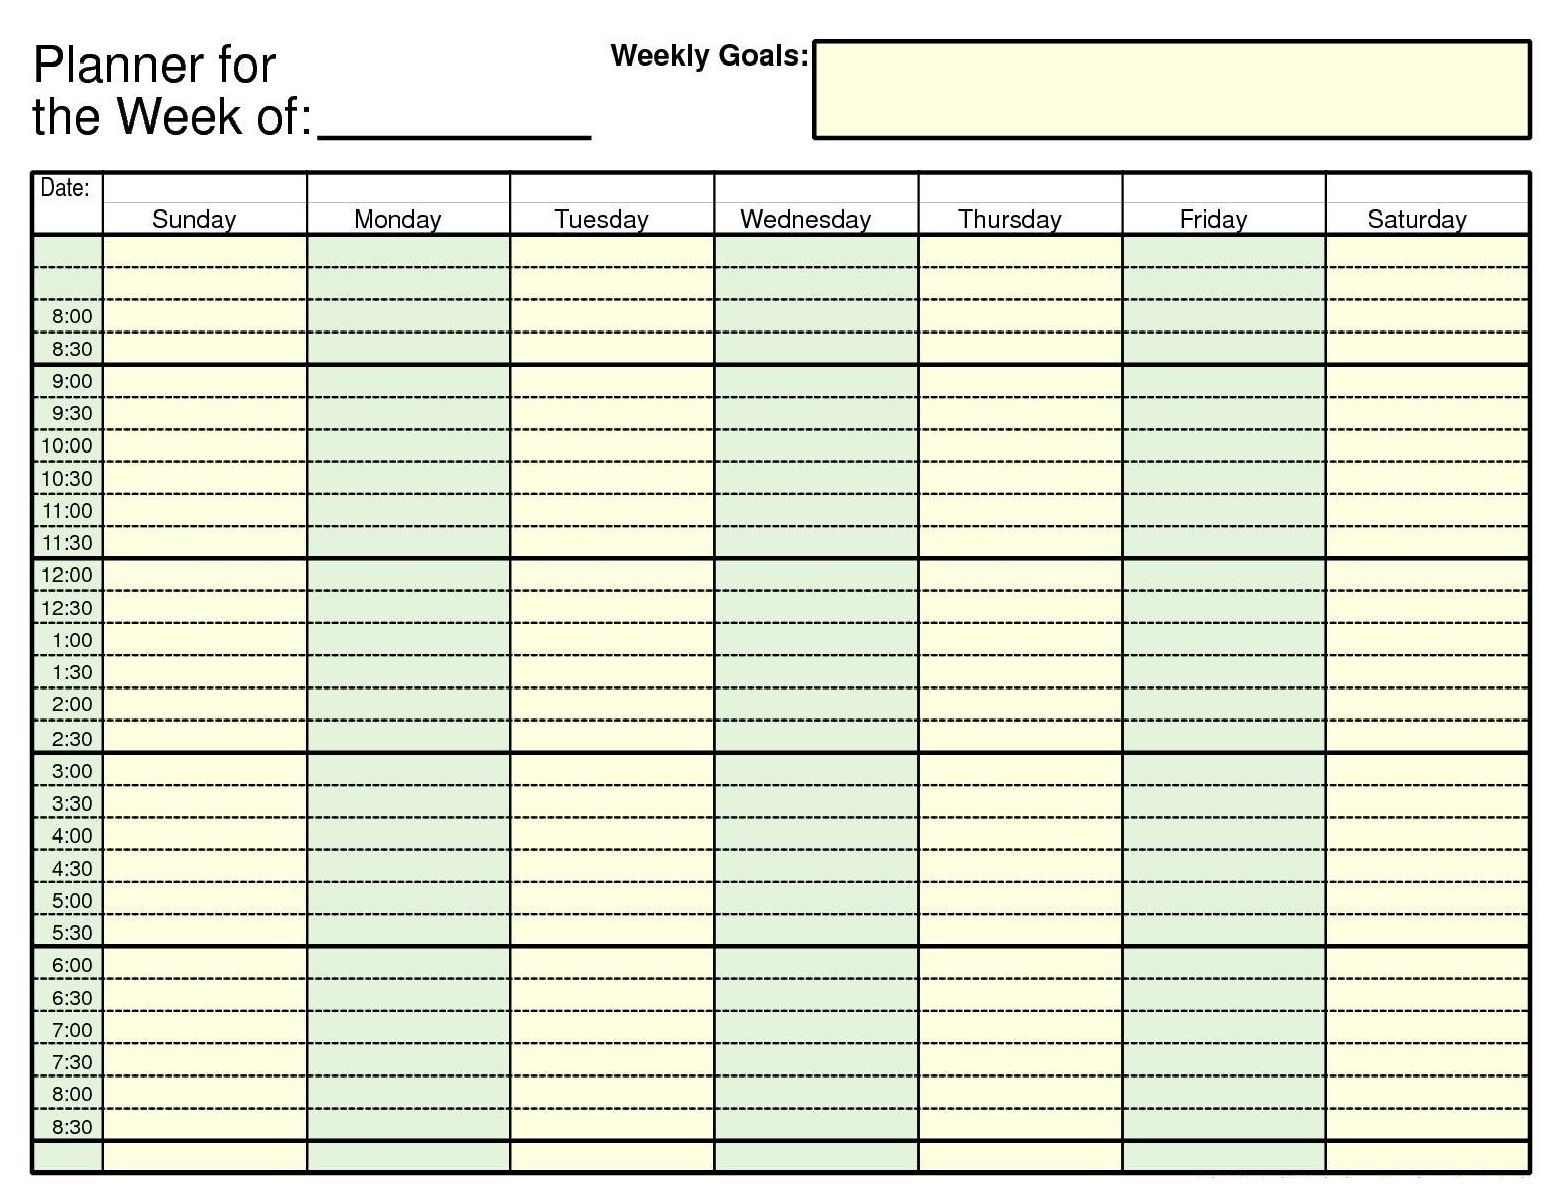 Daily Calendar Template Excel Sheet | Excel Calendar within Daily Calendar Template With Time Slots